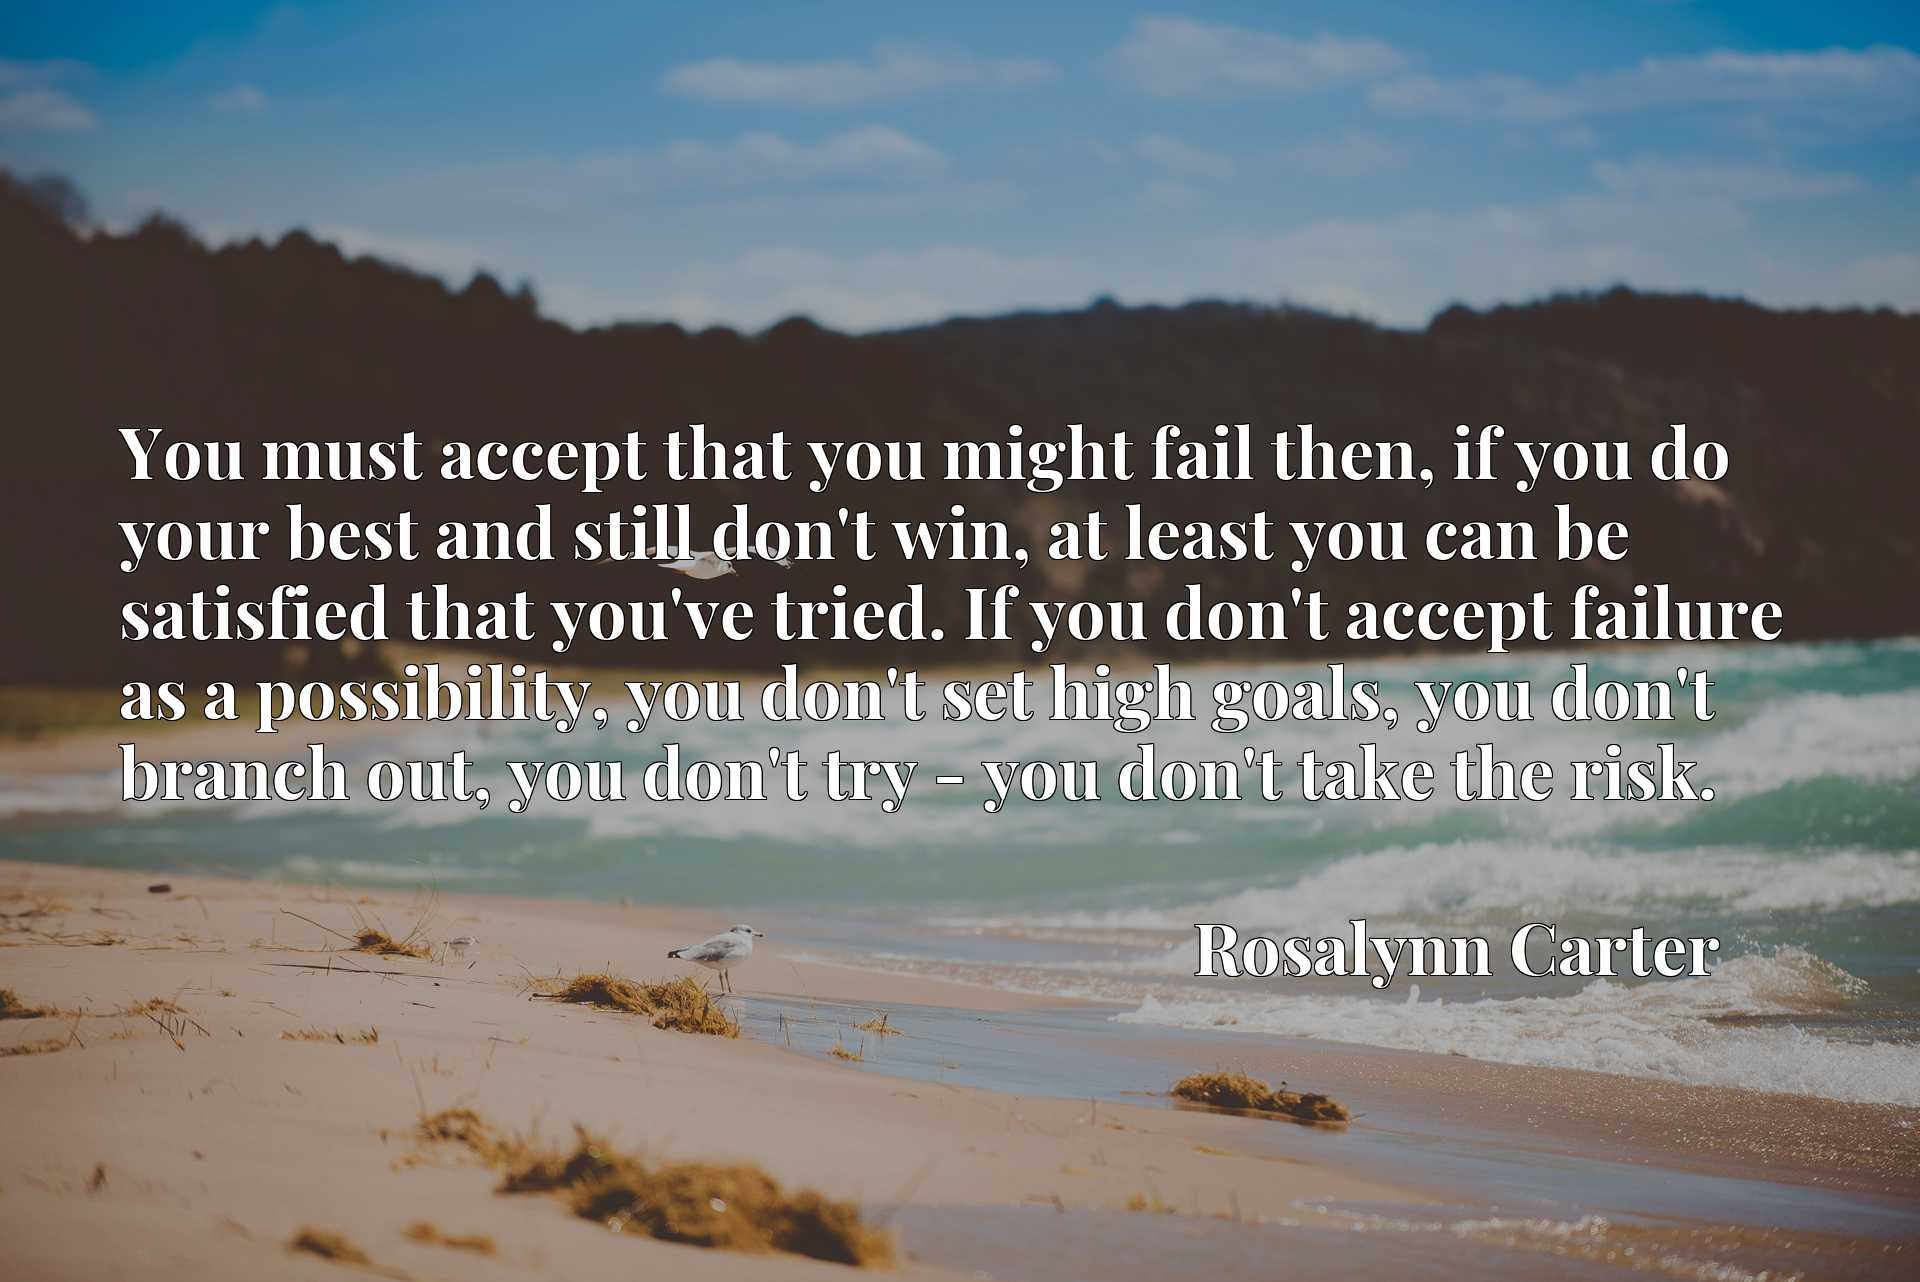 You must accept that you might fail then, if you do your best and still don't win, at least you can be satisfied that you've tried. If you don't accept failure as a possibility, you don't set high goals, you don't branch out, you don't try - you don't take the risk.